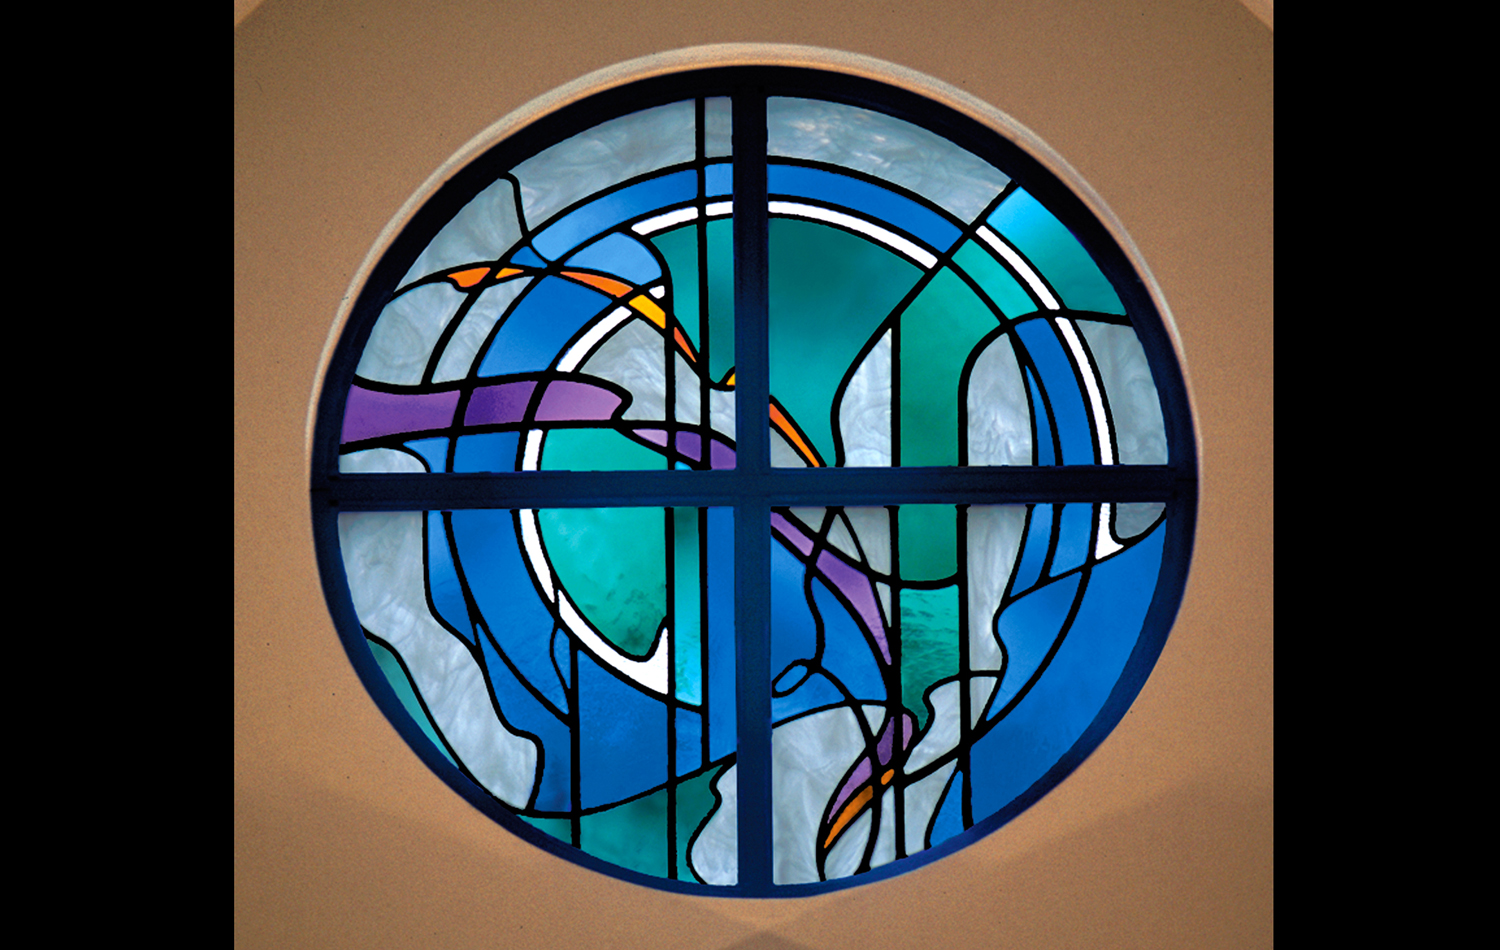 The Evangelical Lutheran Church of the Atonement, Wyomissiong, Pennsylvania. 6' Diameter